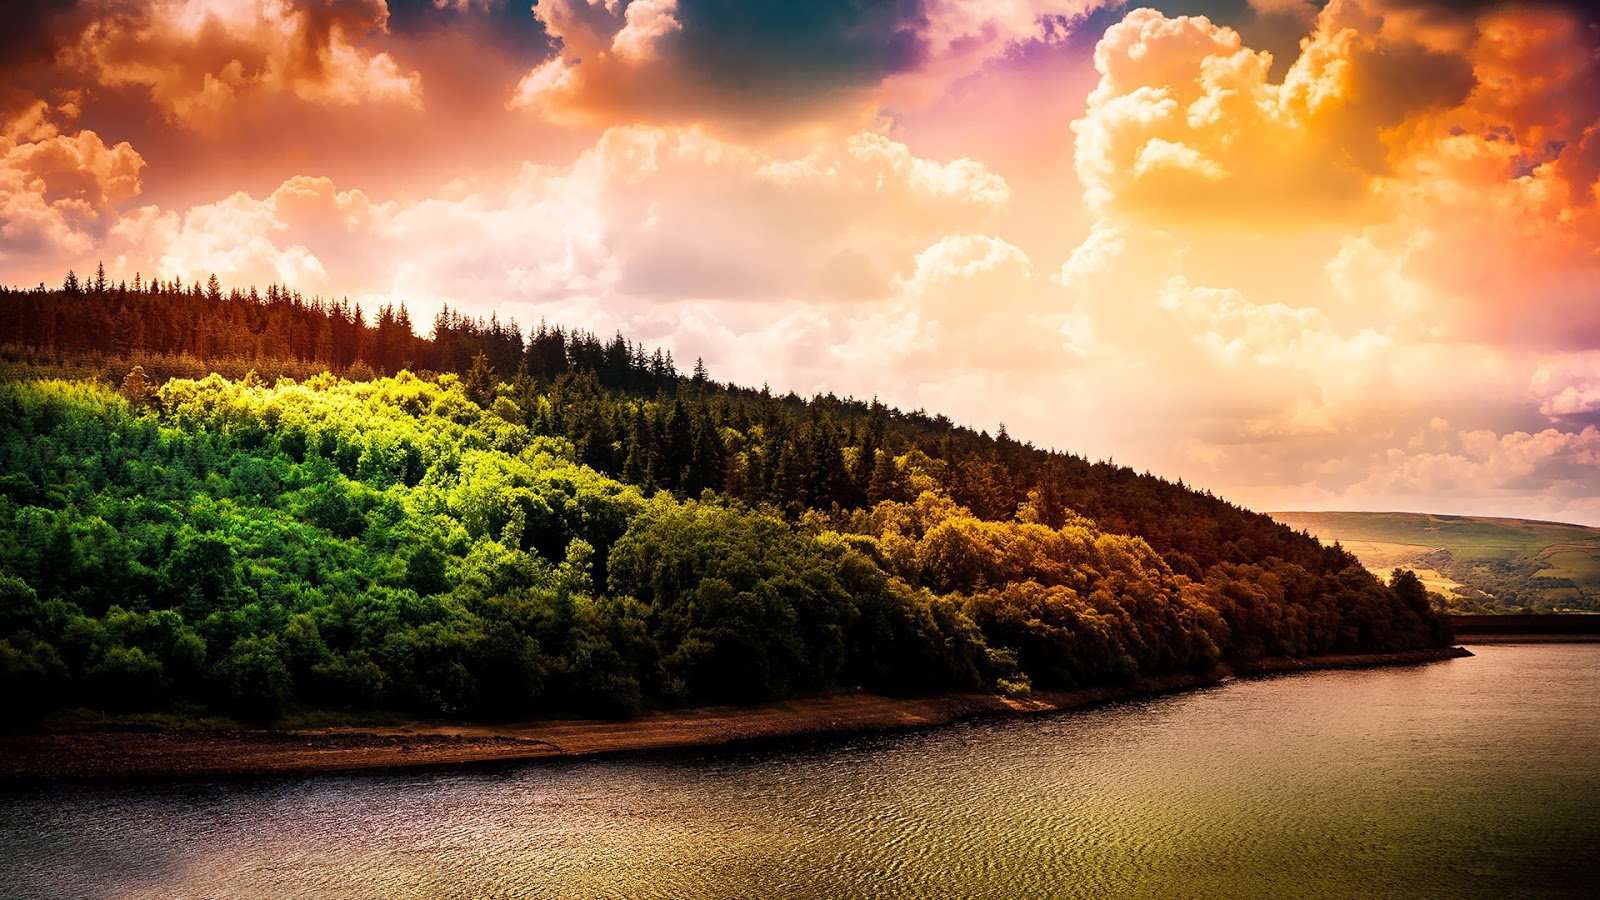 HD Wallpapers: hd images of nature,nature full screen ...